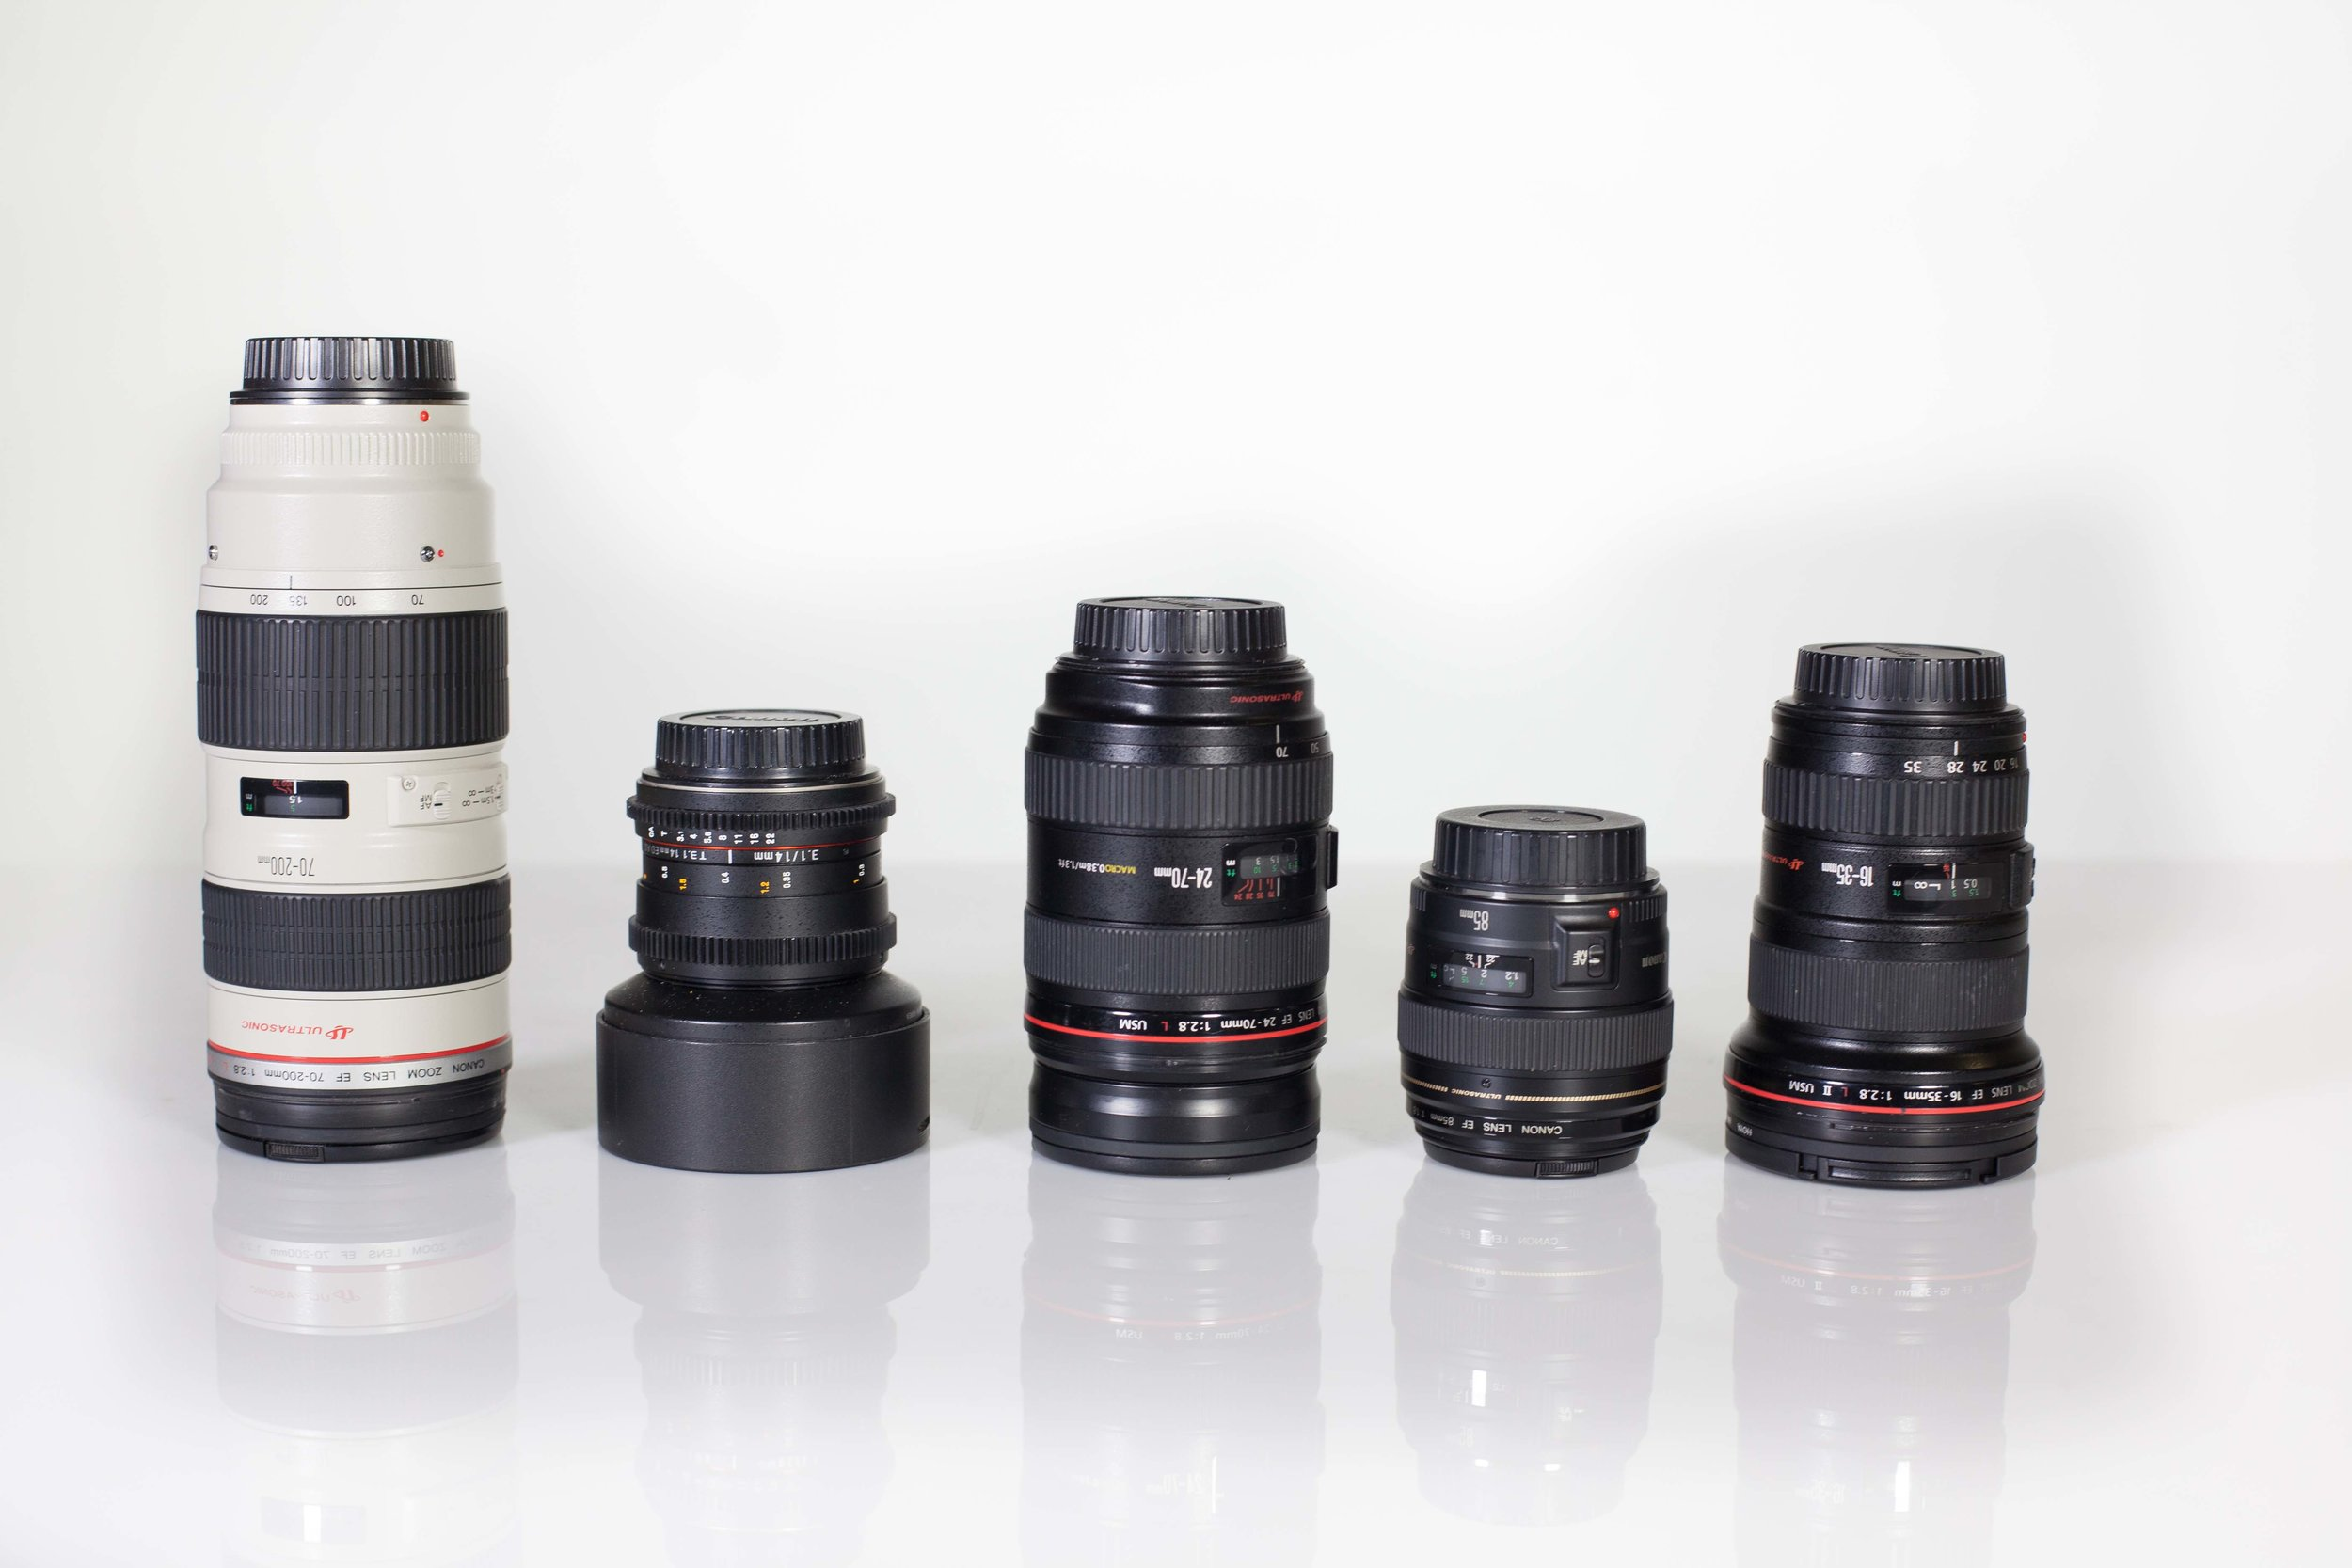 DSLR Glass - All the glass you will need: 14mm, 16-35mm, 24-70mm, 70-200mm, 50mm and 85mm prime